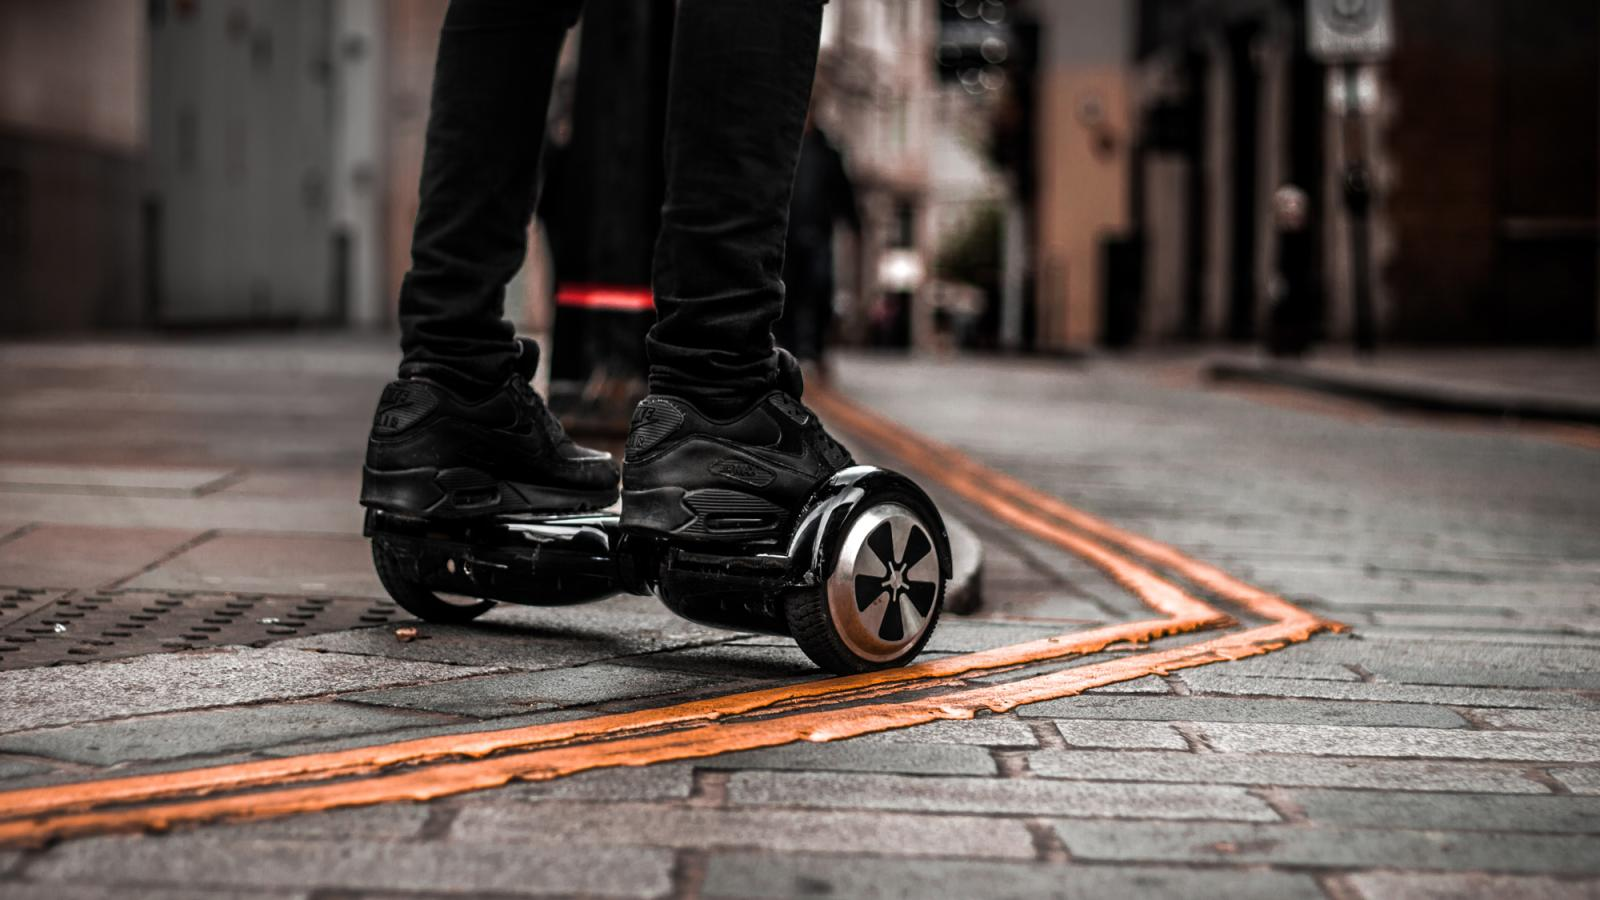 About segway hoverboard solowheel